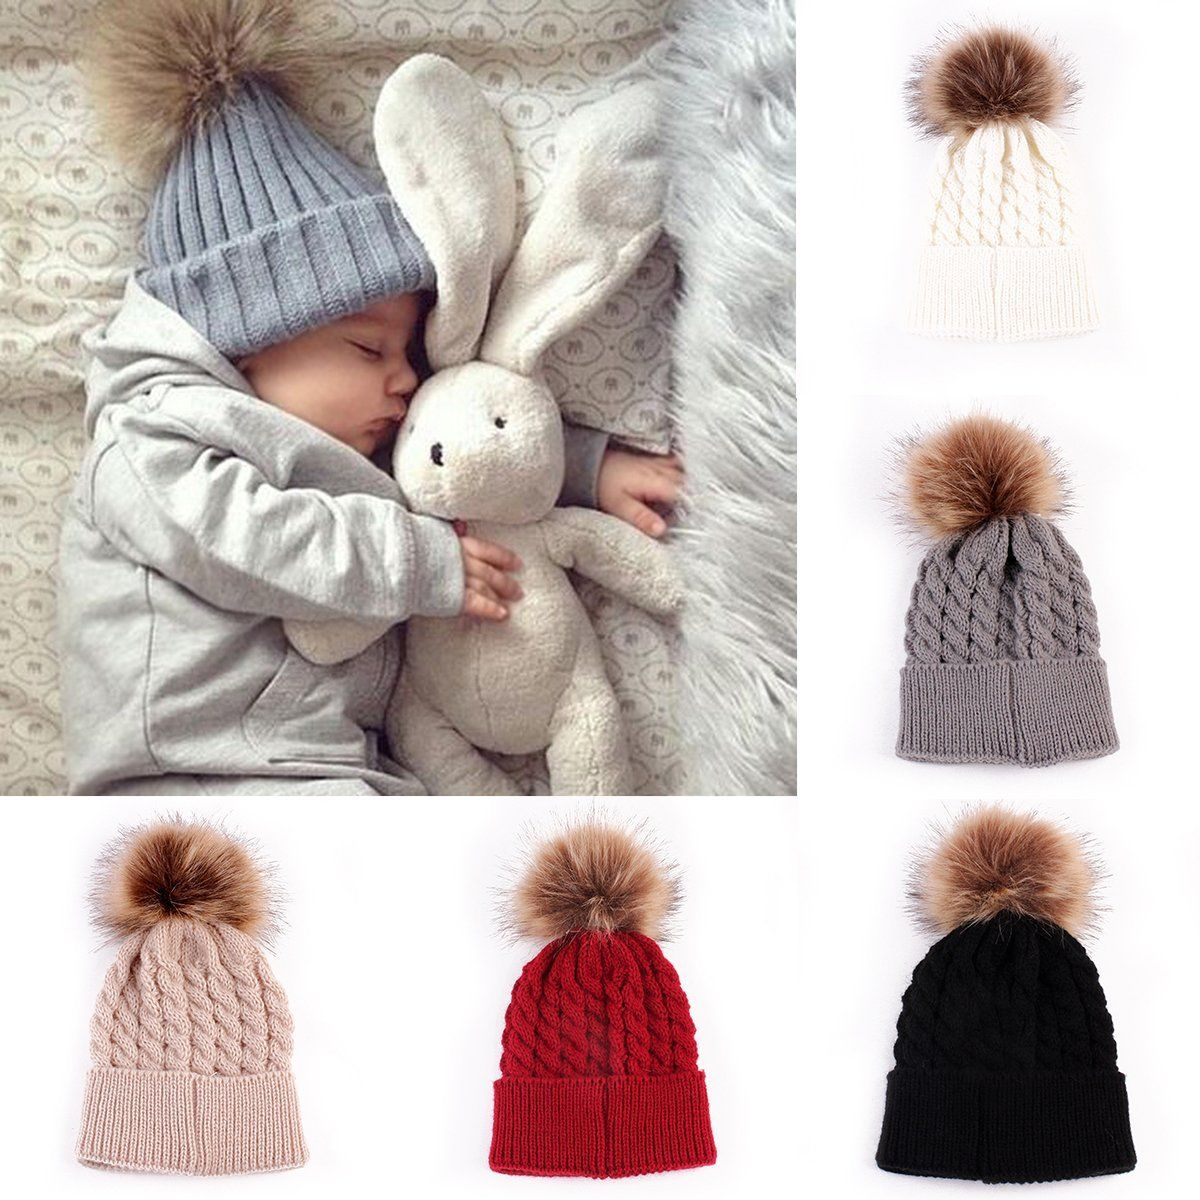 Infant Winter Warm Knit Crochet Caps Baby Beanie Hat Toddler Kid Faux Fur pom pom Knit skullies ski Cap 0-3 years festina часы festina 16975 2 коллекция automatic